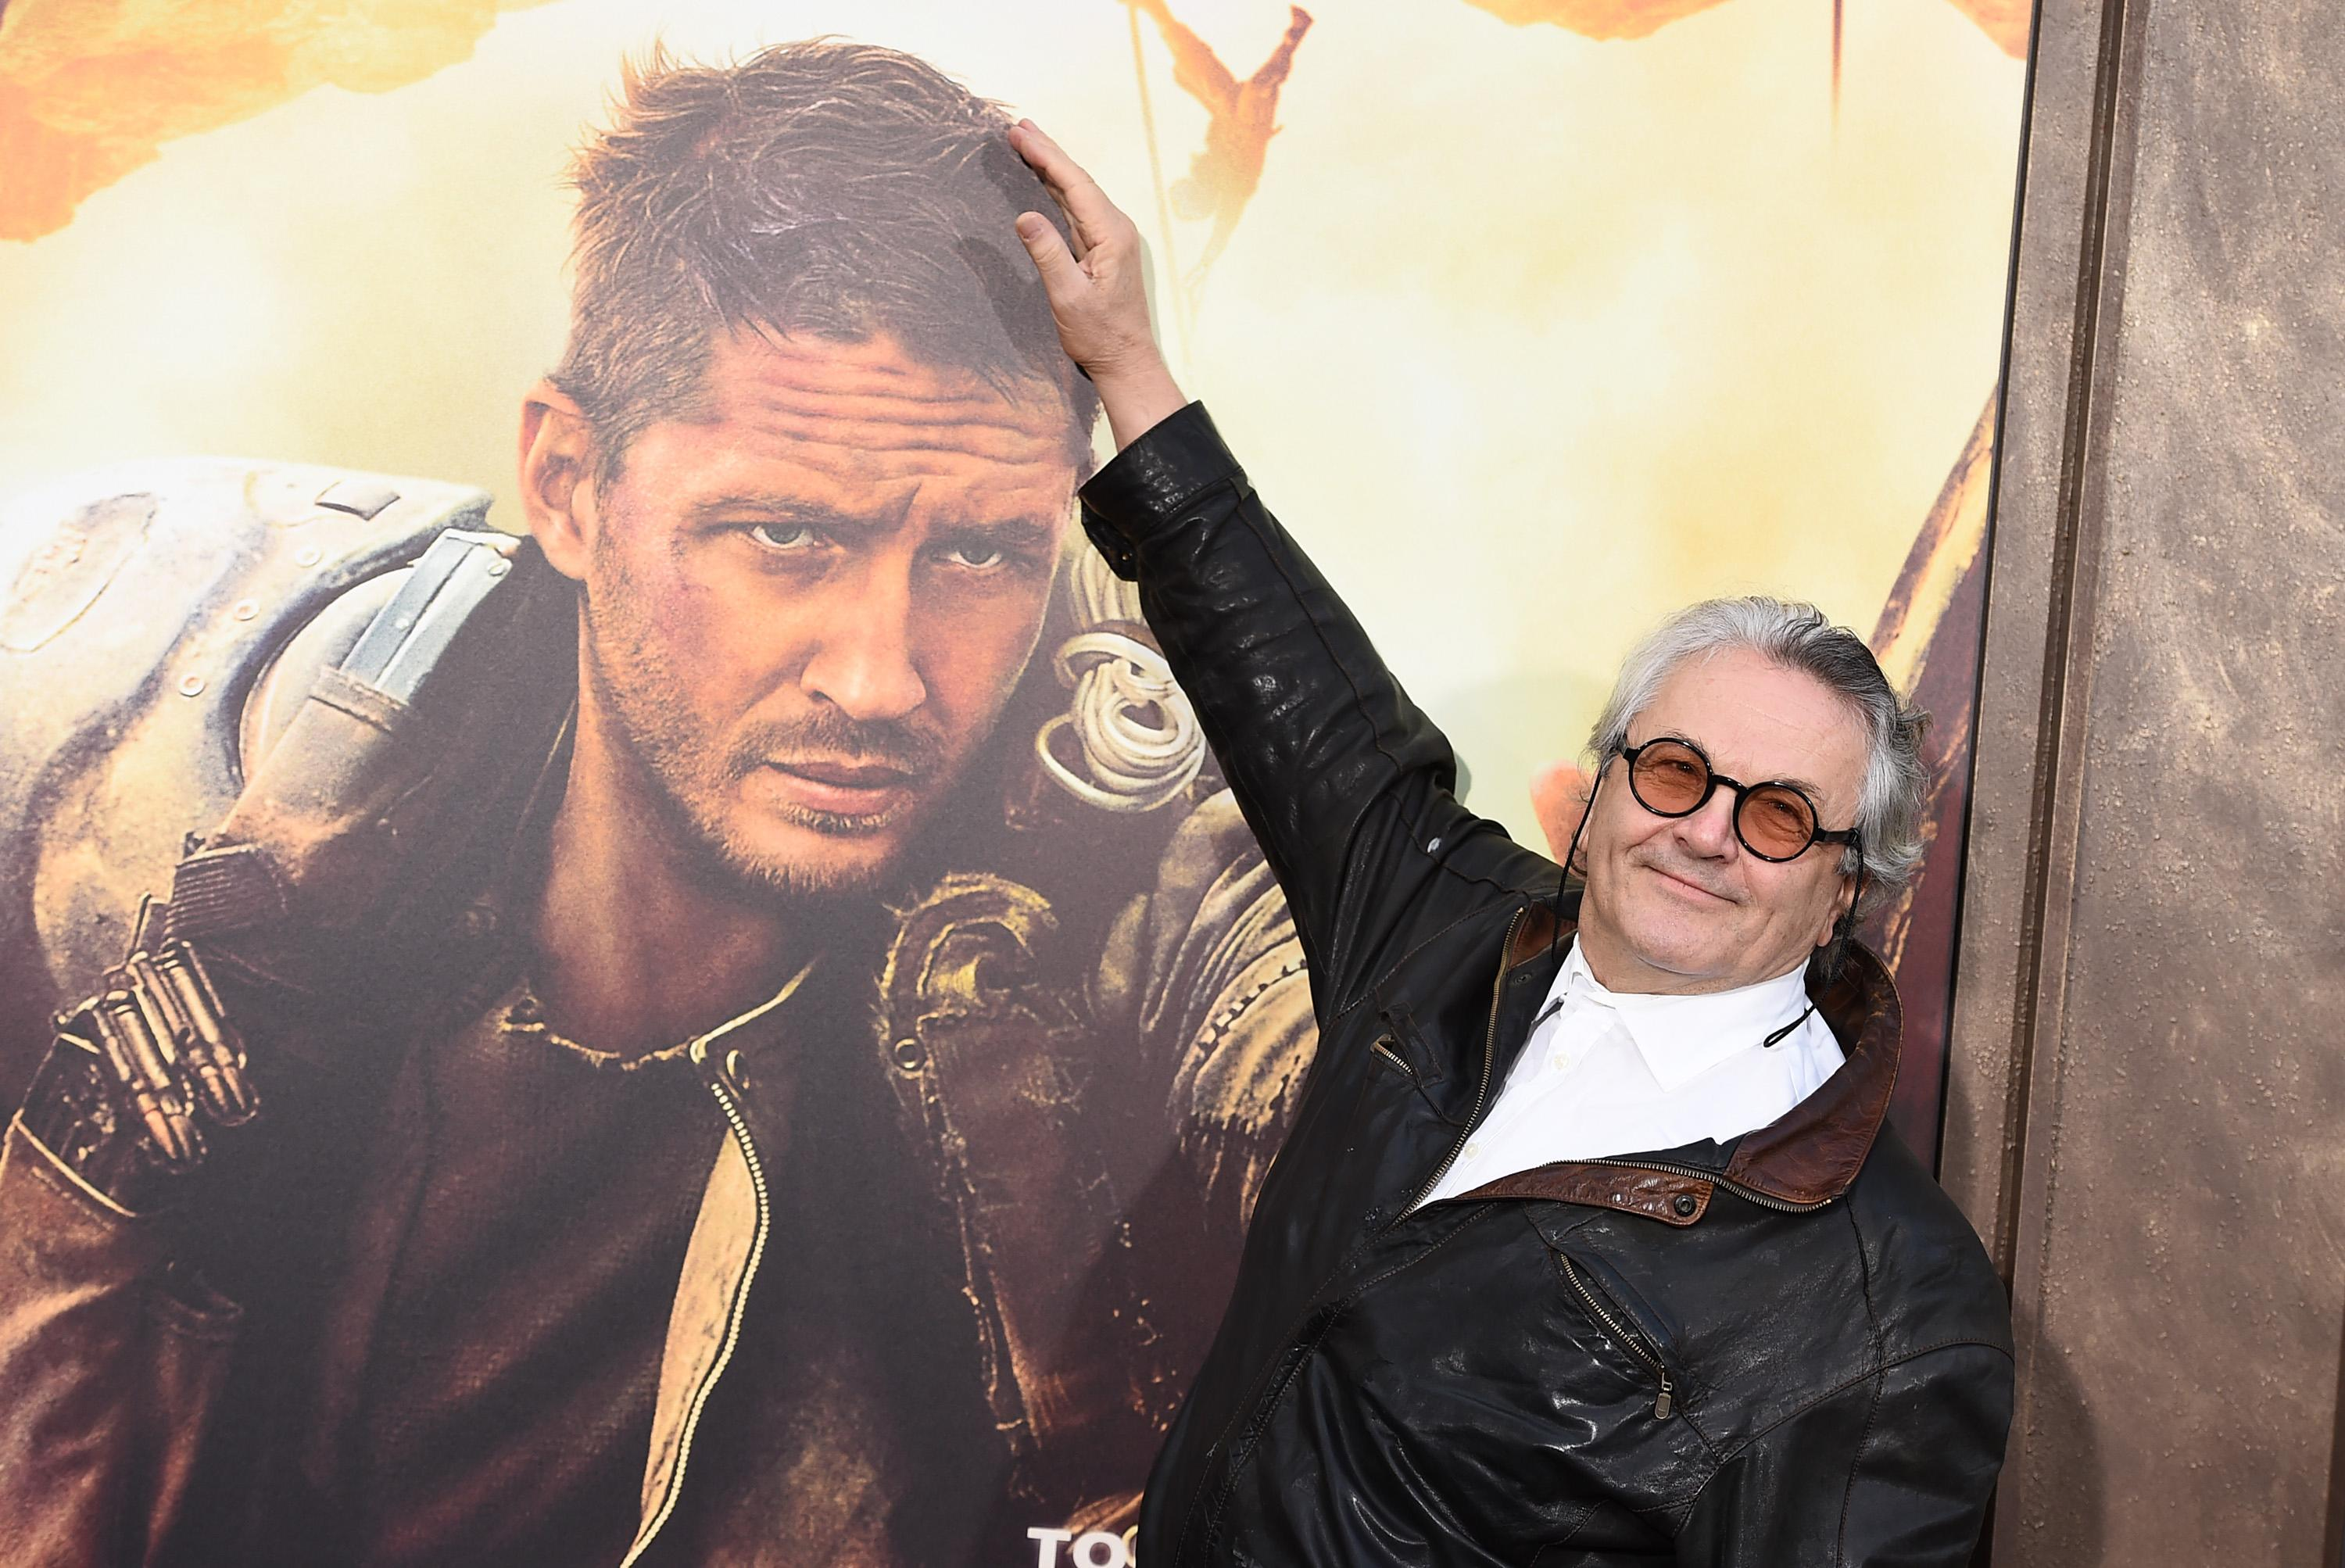 NBR names 'Mad Max: Fury Road' best film of the year